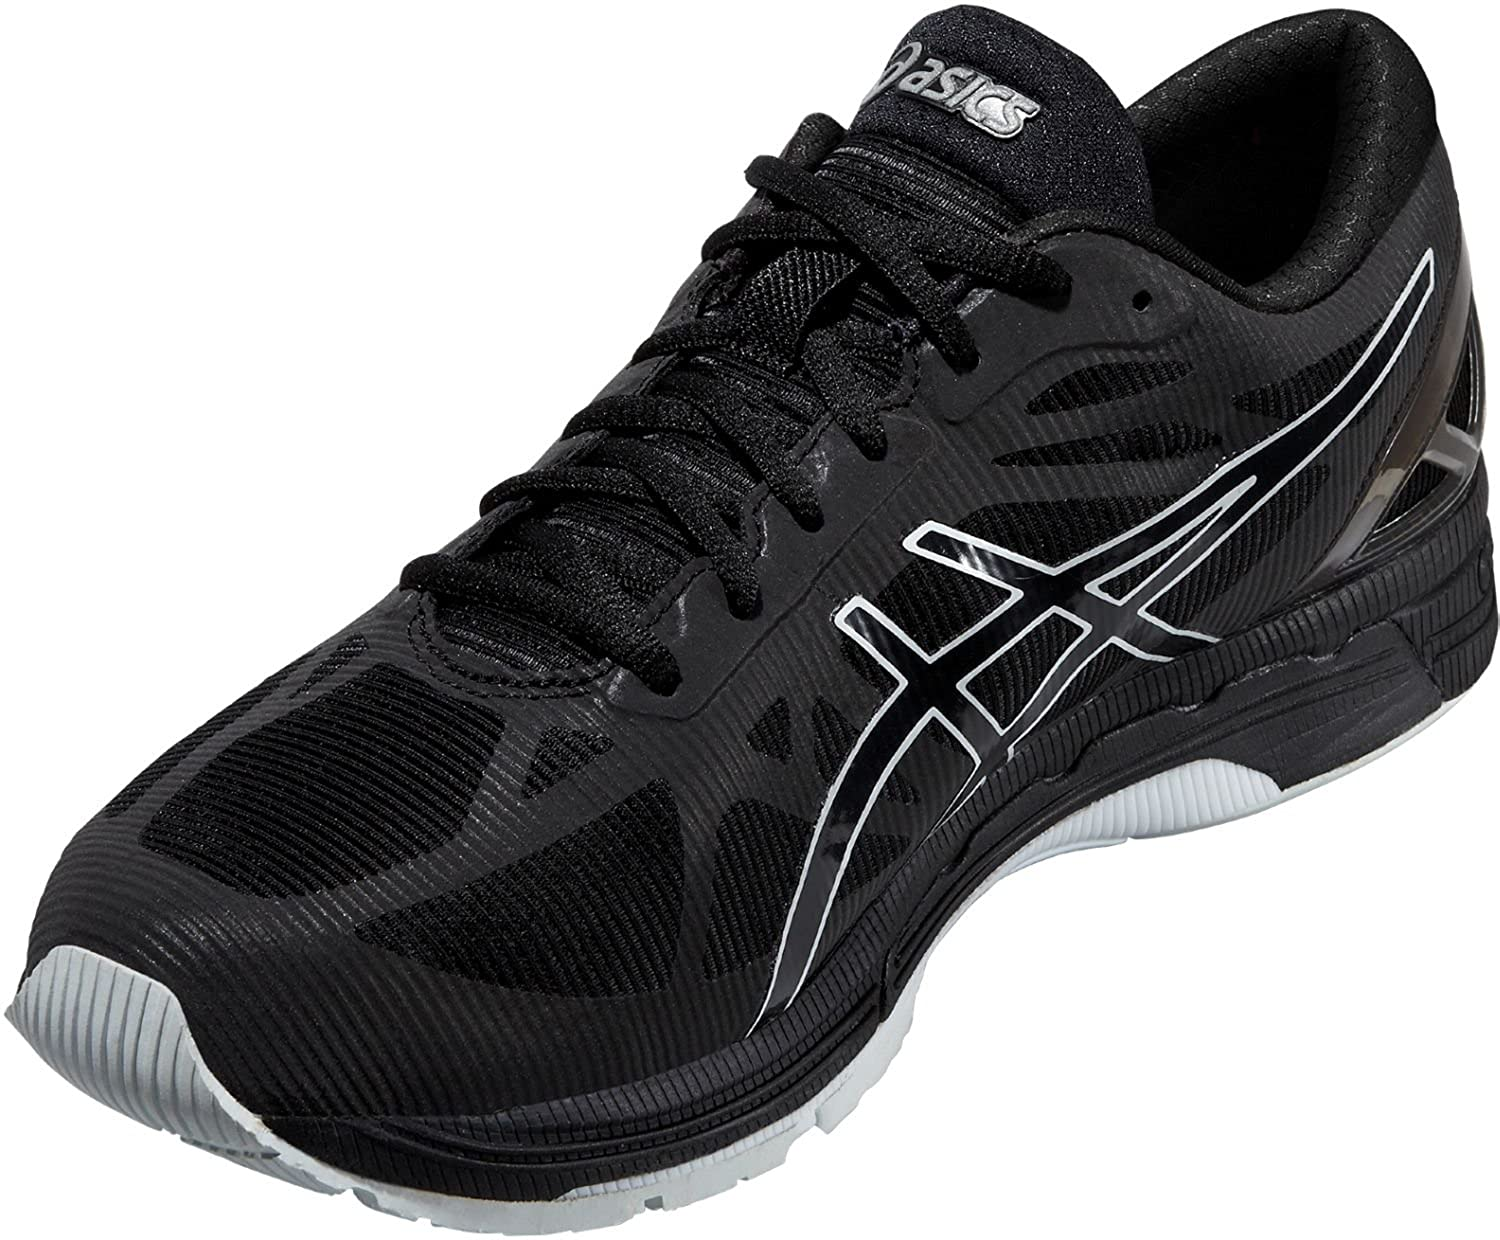 Black Trainer Athlétisme 20 Asics Nc Ds Running Gel Shoes 1516 HYWED92I